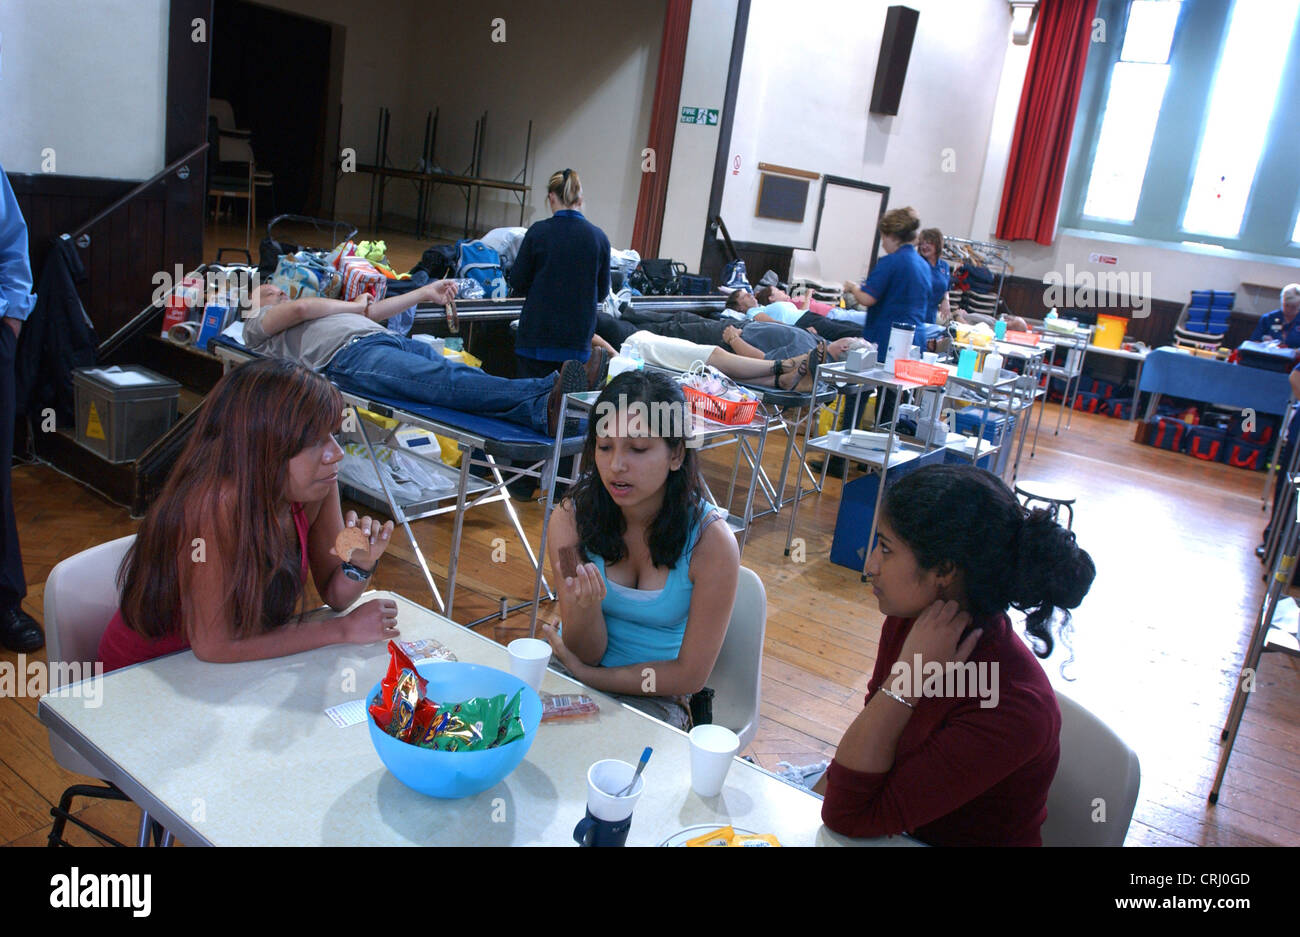 Young girls relax with refreshments after donating blood at a NHS National Blood Service collection centre. - Stock Image